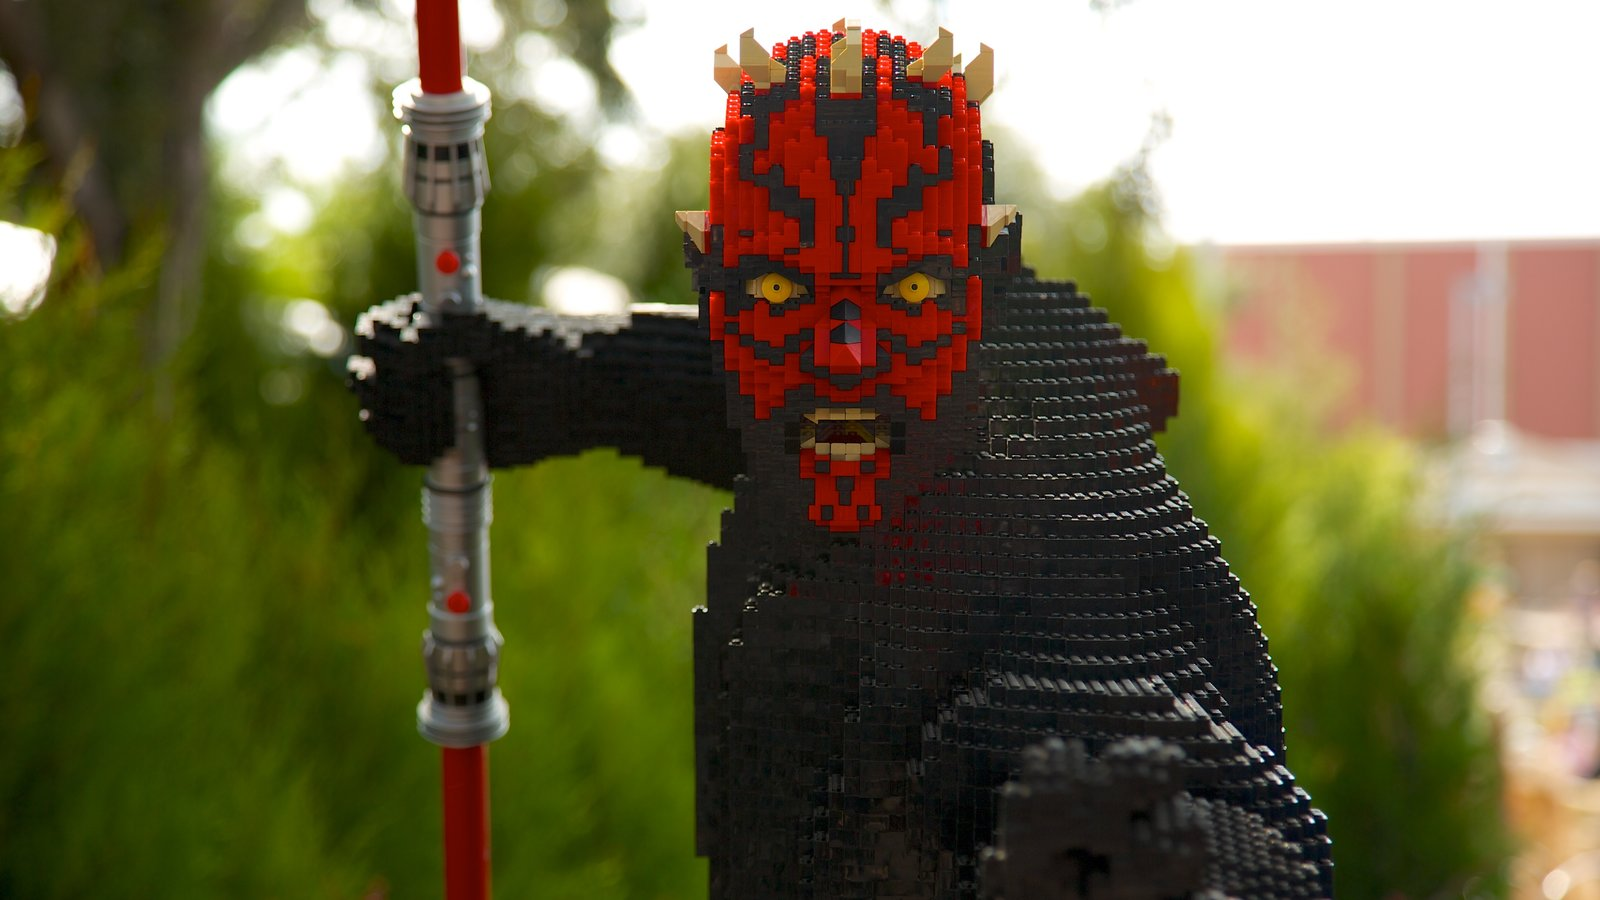 Legoland Florida showing rides, outdoor art and a statue or sculpture